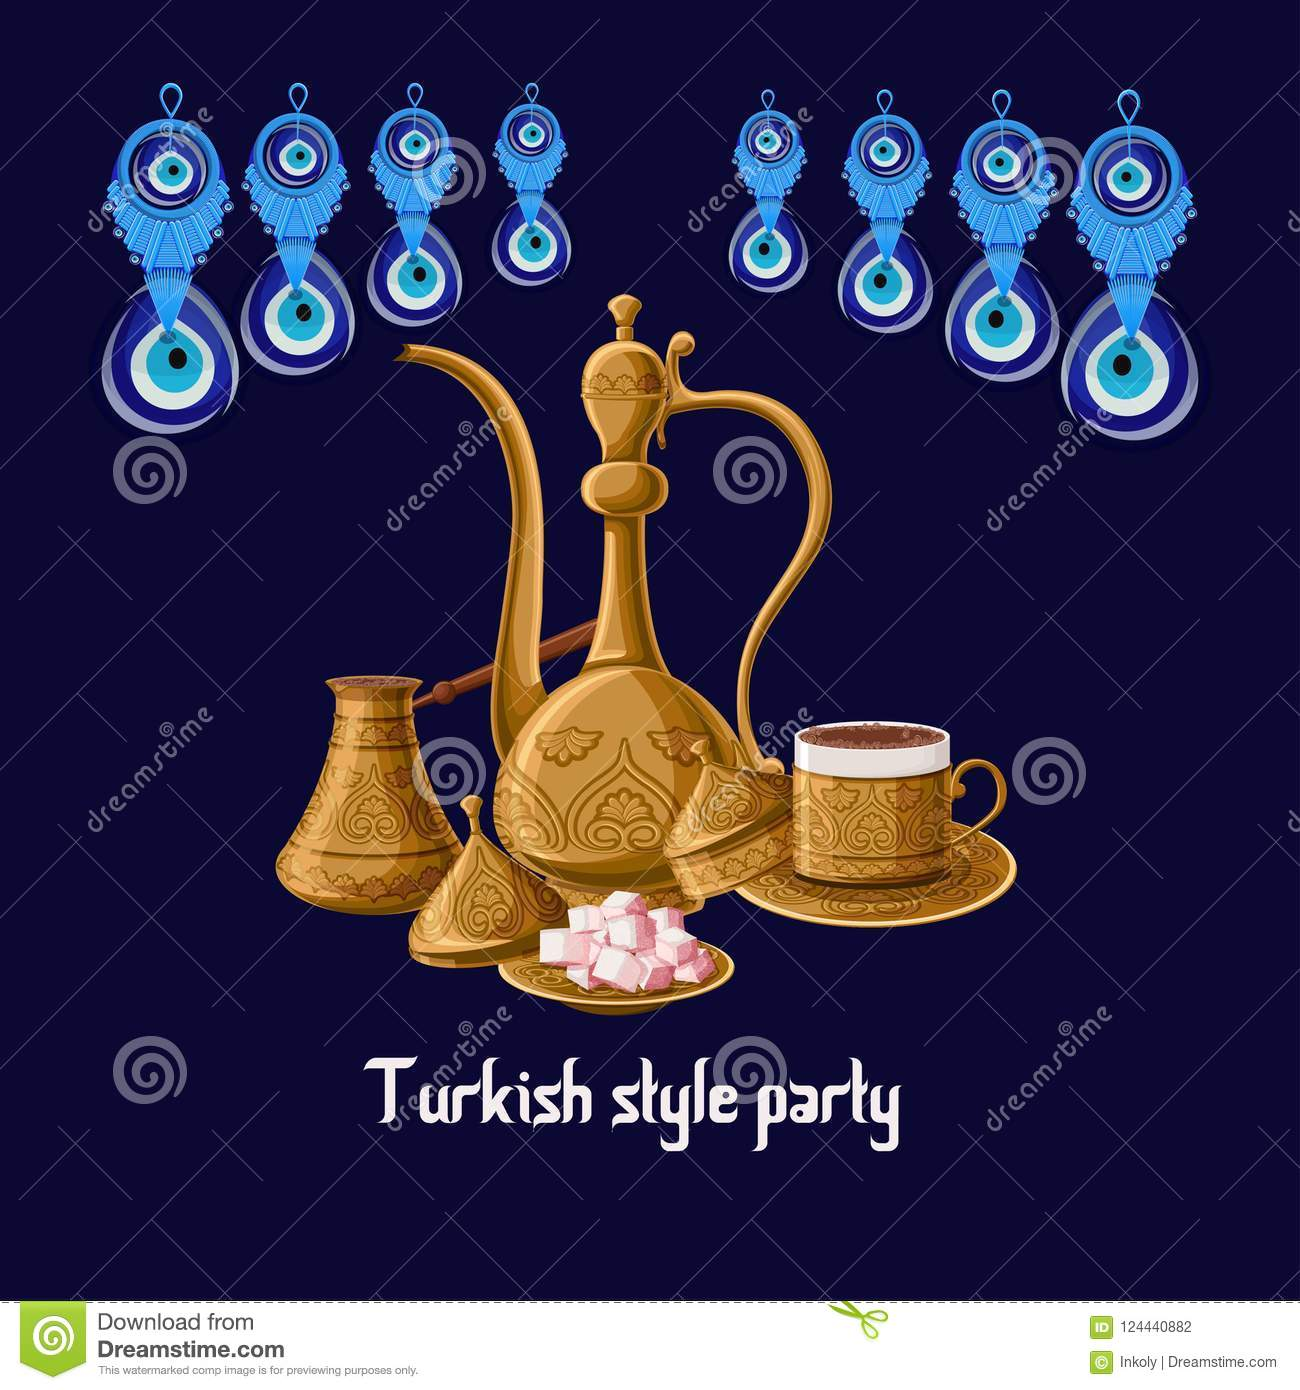 Turkish style party greeeting card with evil eyes and brass utensils pitcher, turkish delights, cezve and coffe cup.